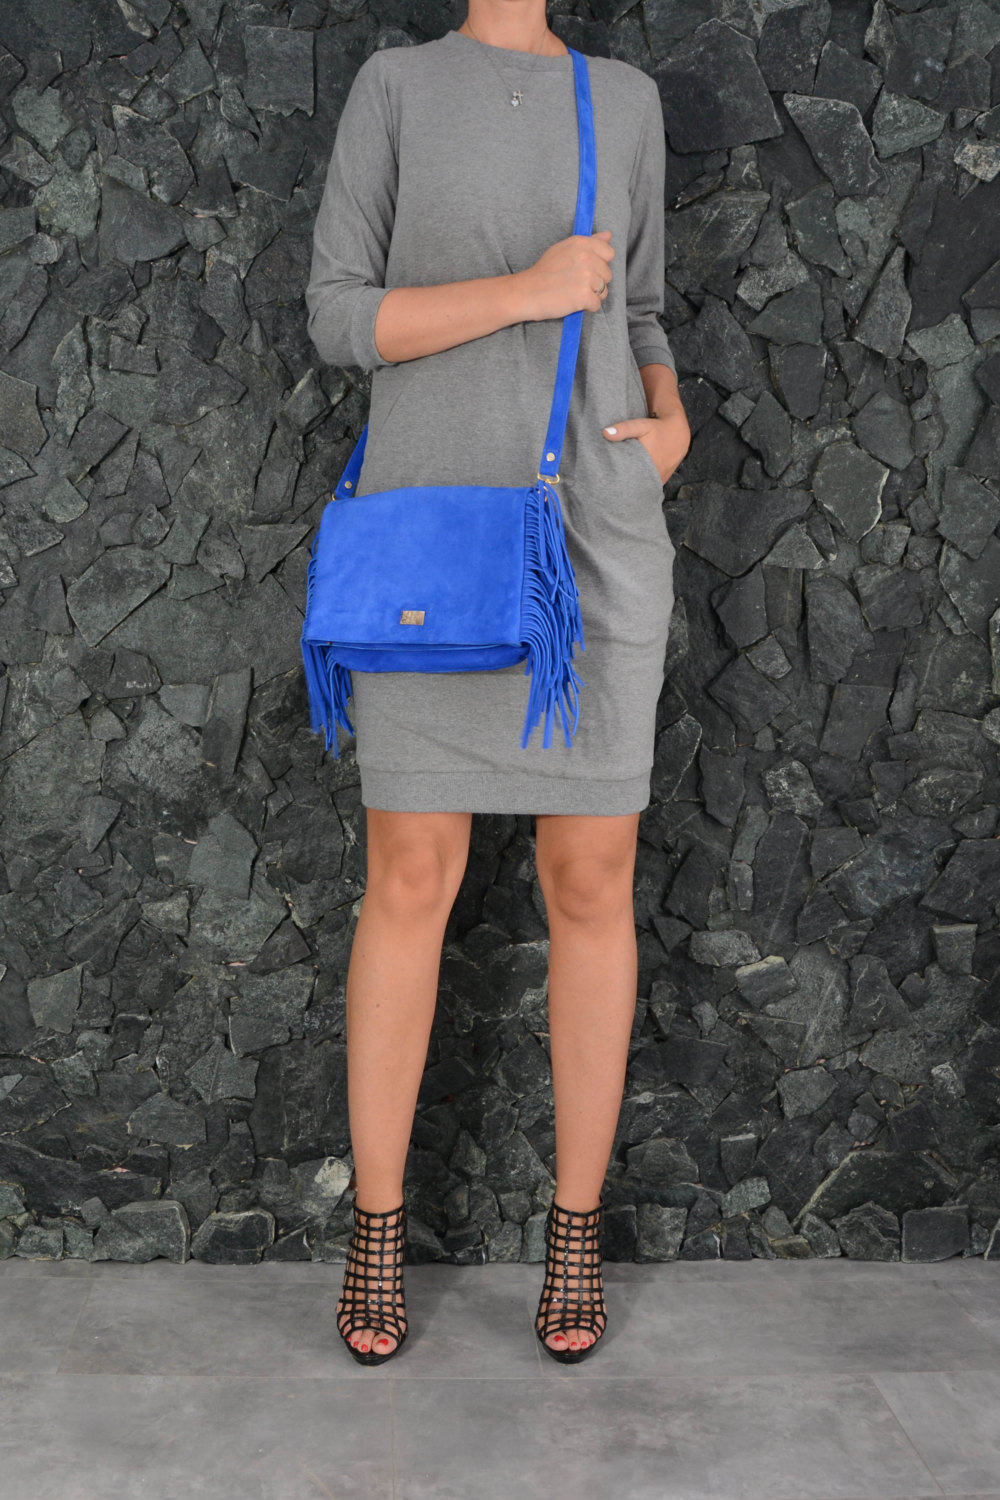 Ultramarine blue leather fringe bag